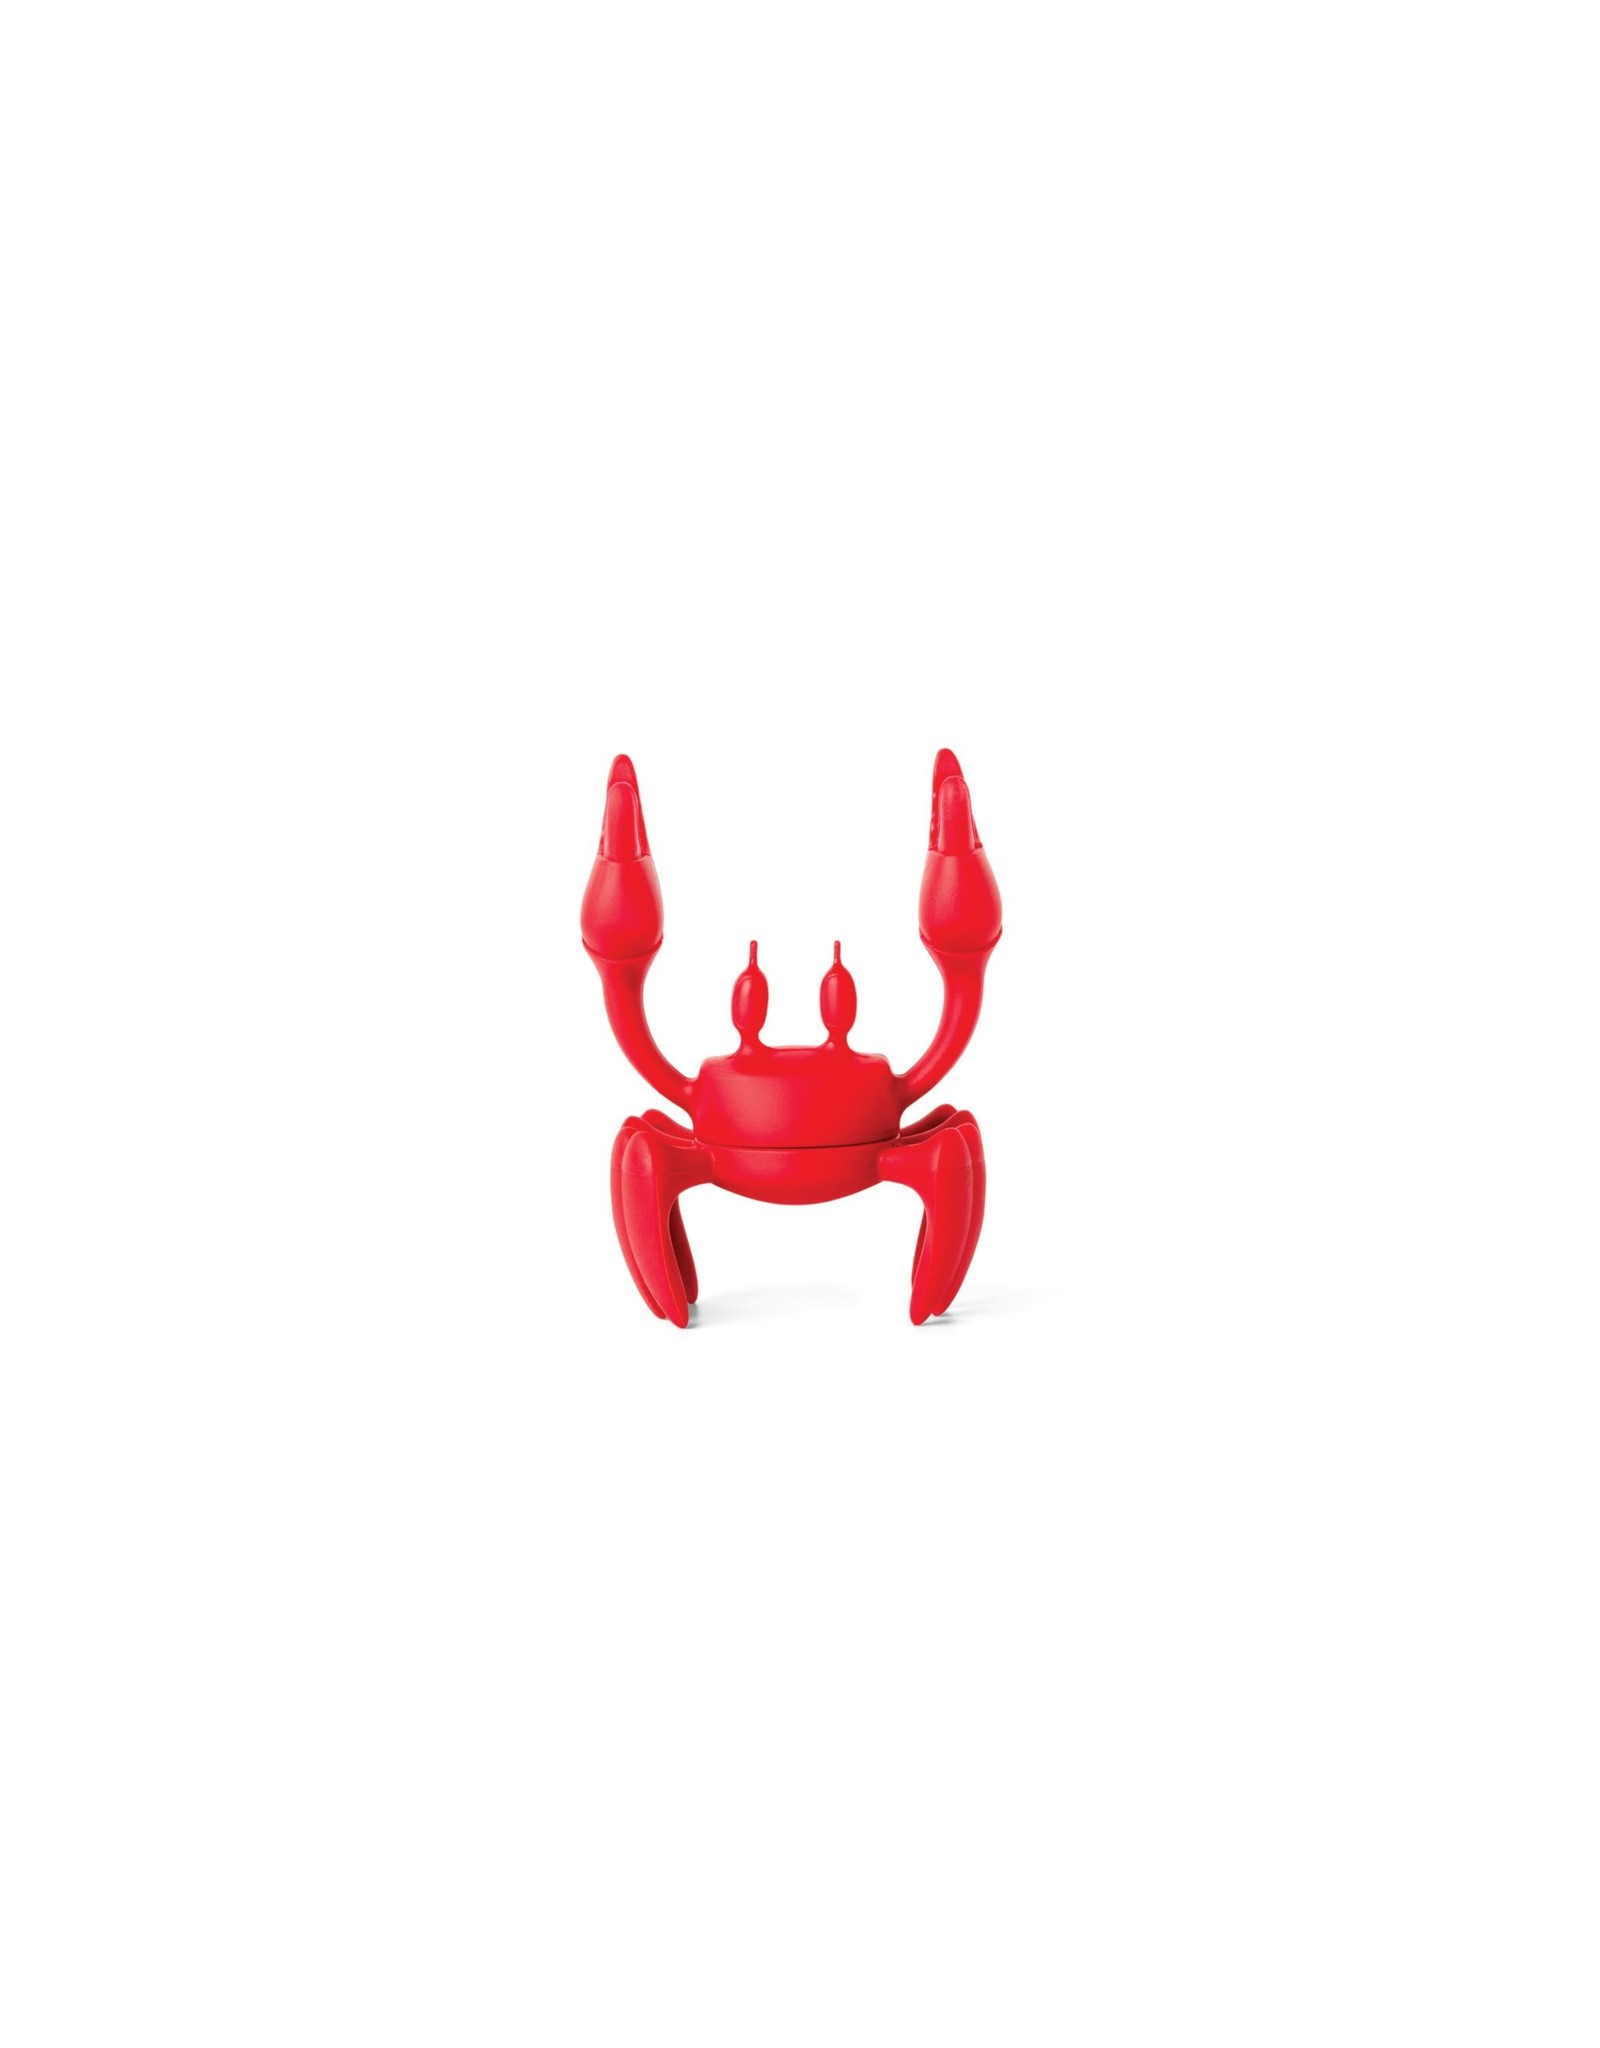 Ototo spoon holder in the shape of a red crab